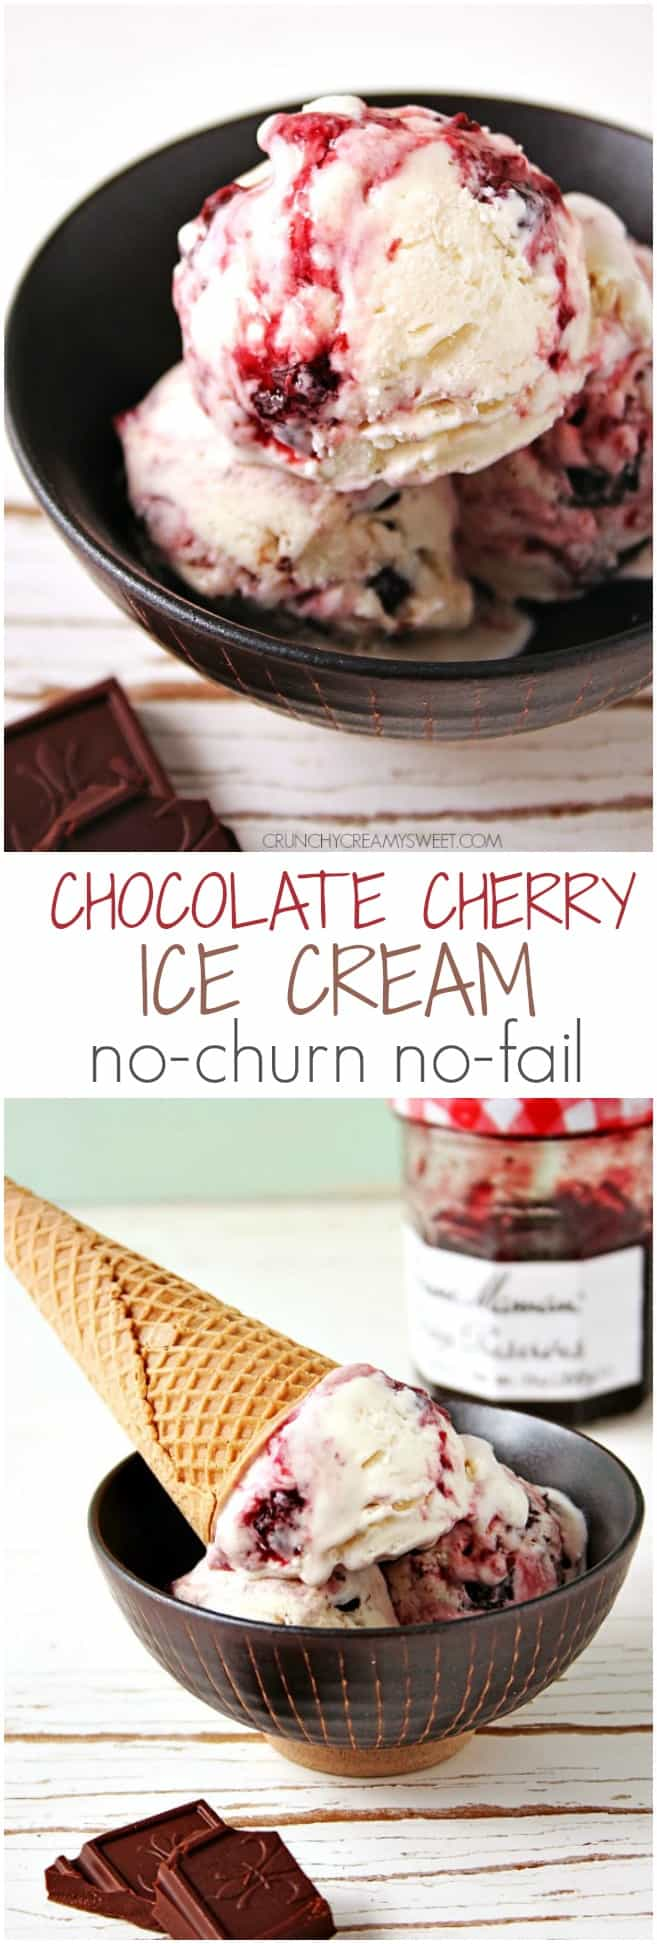 No Churn No Fail 2 Ingredient Ice Cream with Cherry Preserves and Dark Chocolate @crunchycreamysw Chocolate Cherry Ice Cream